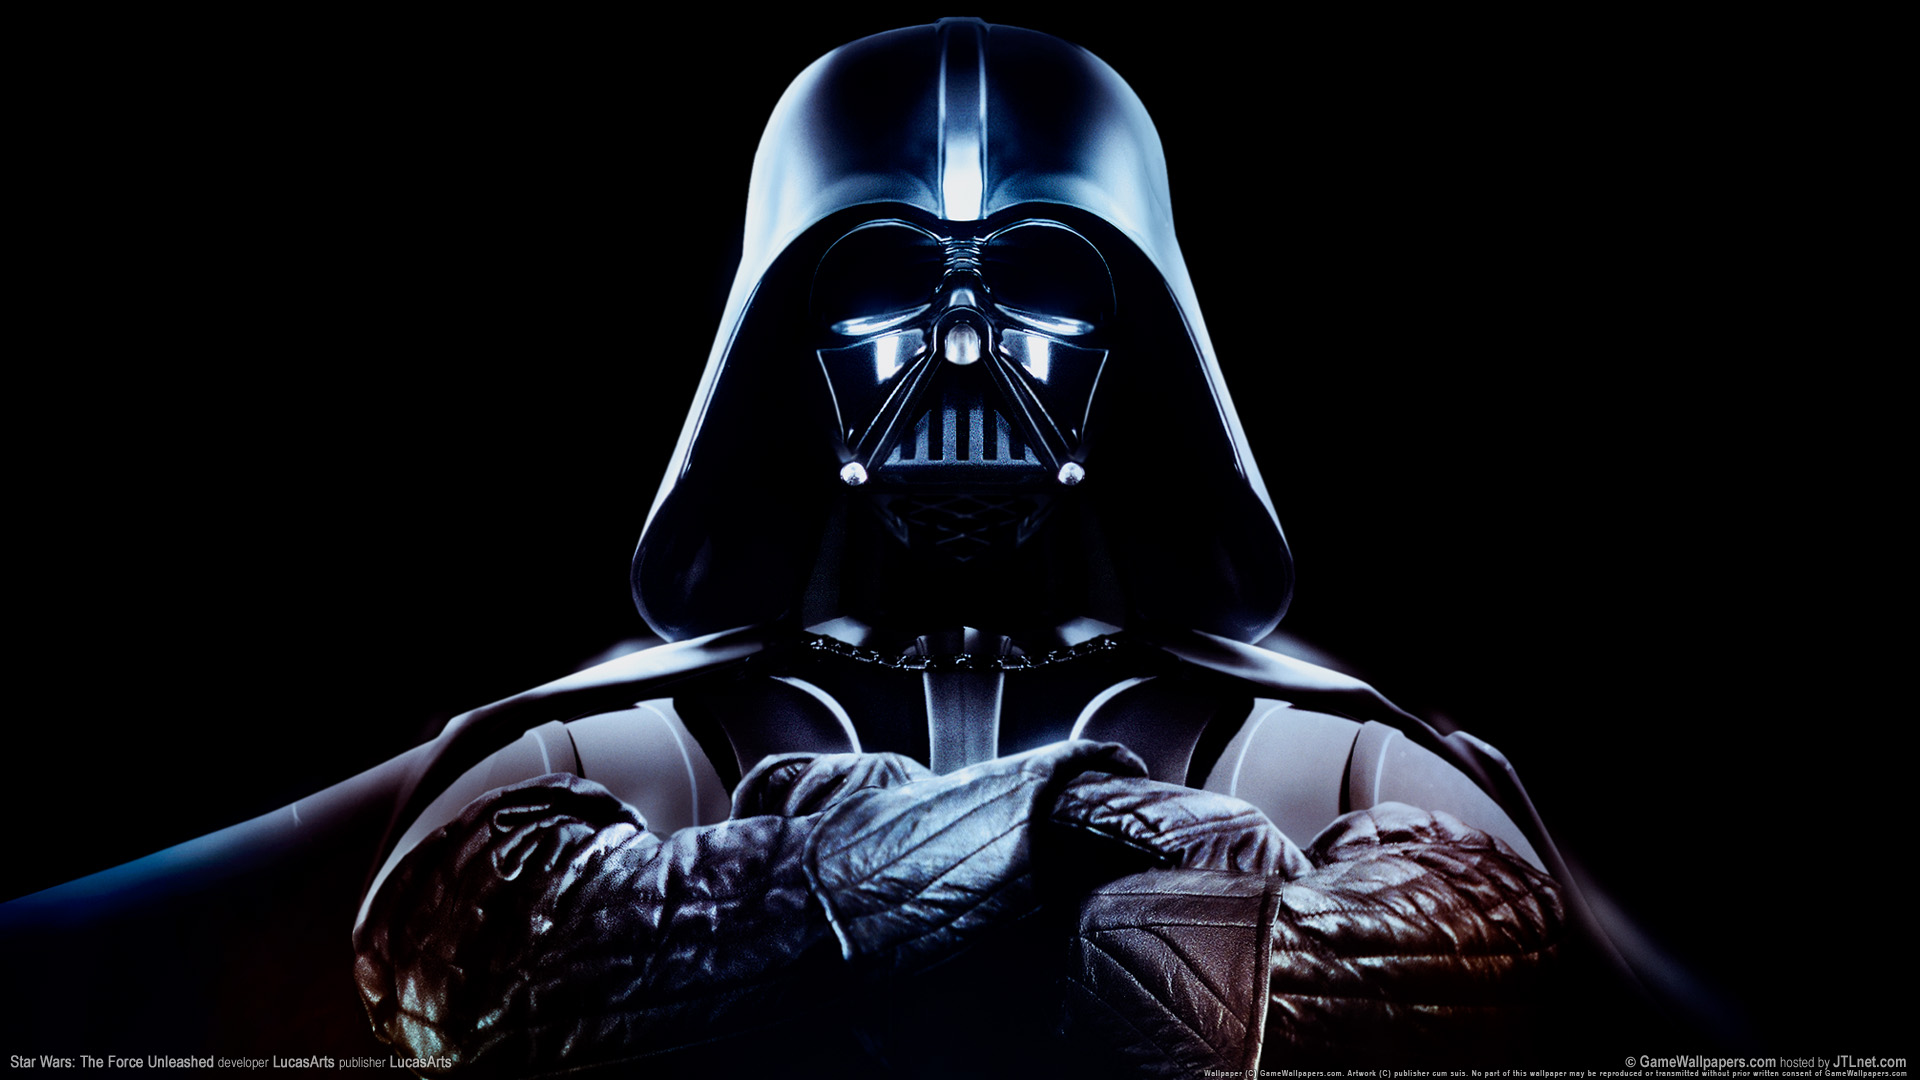 Classical Wallpaper Darth Vader Star Wars Wallpaper 25852934 Fanpop